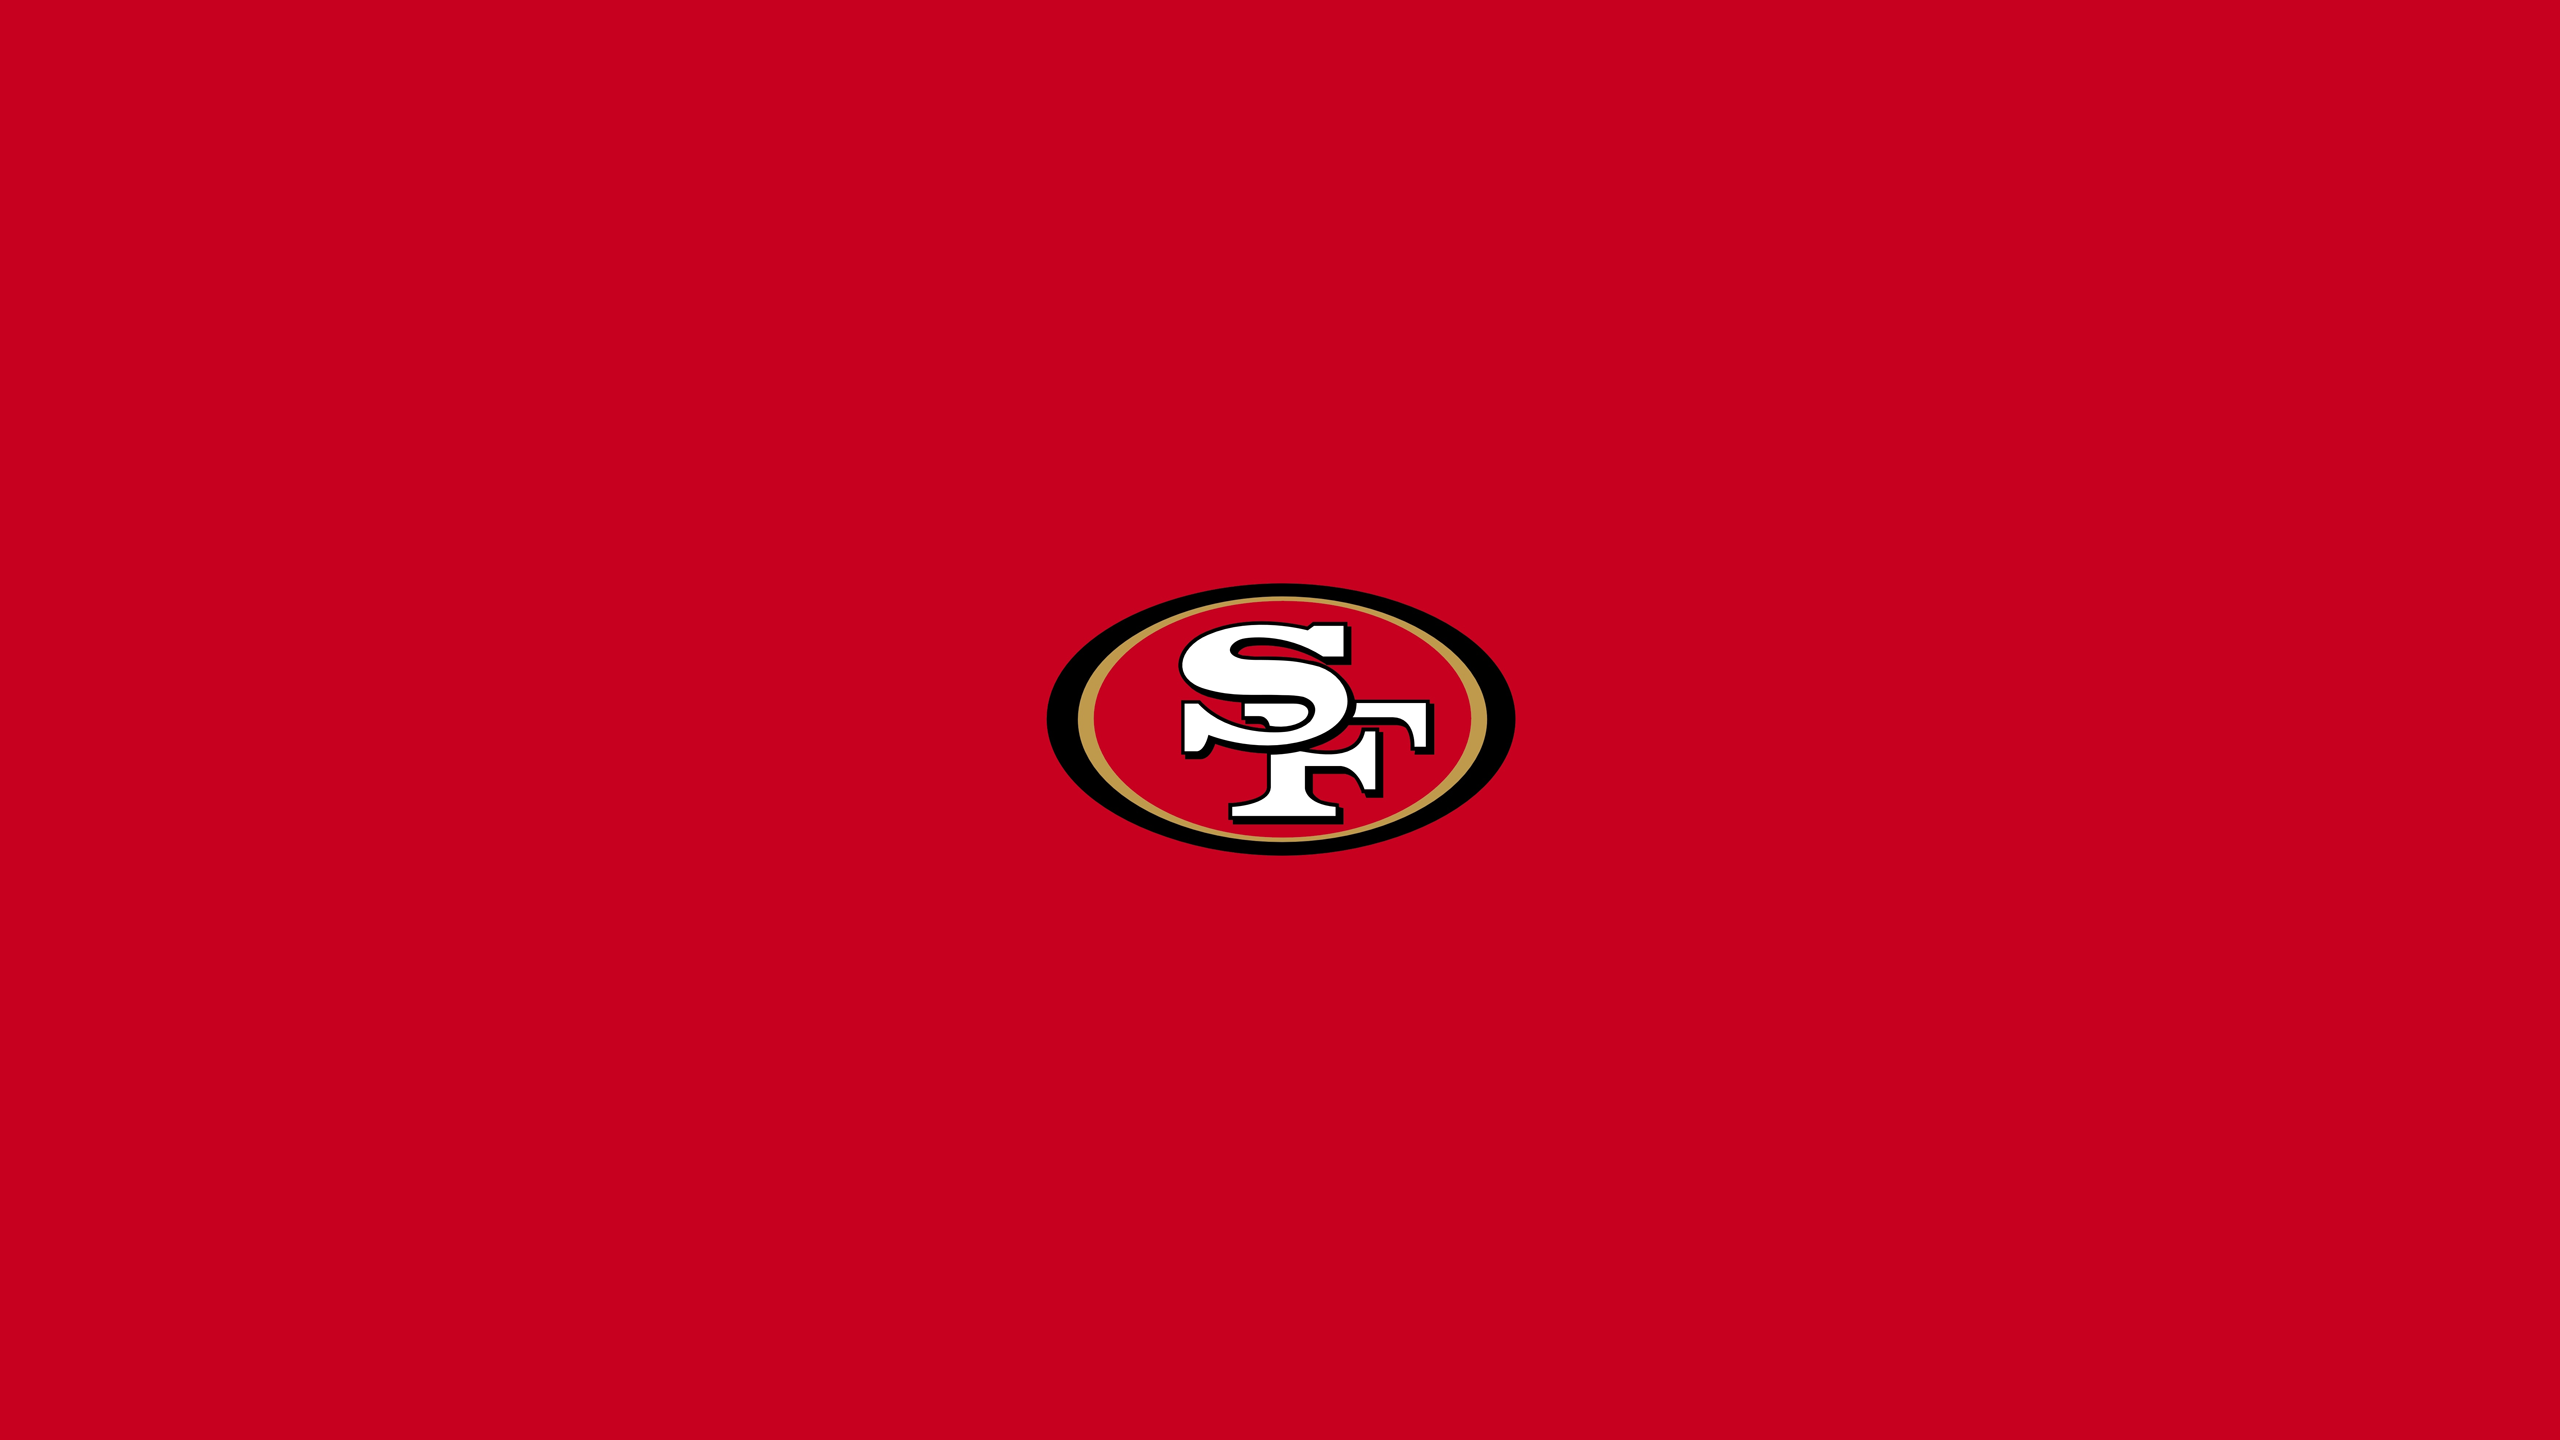 San Francisco 49ERS HD Wallpapers   HD Wallpapers Inn 2560x1440